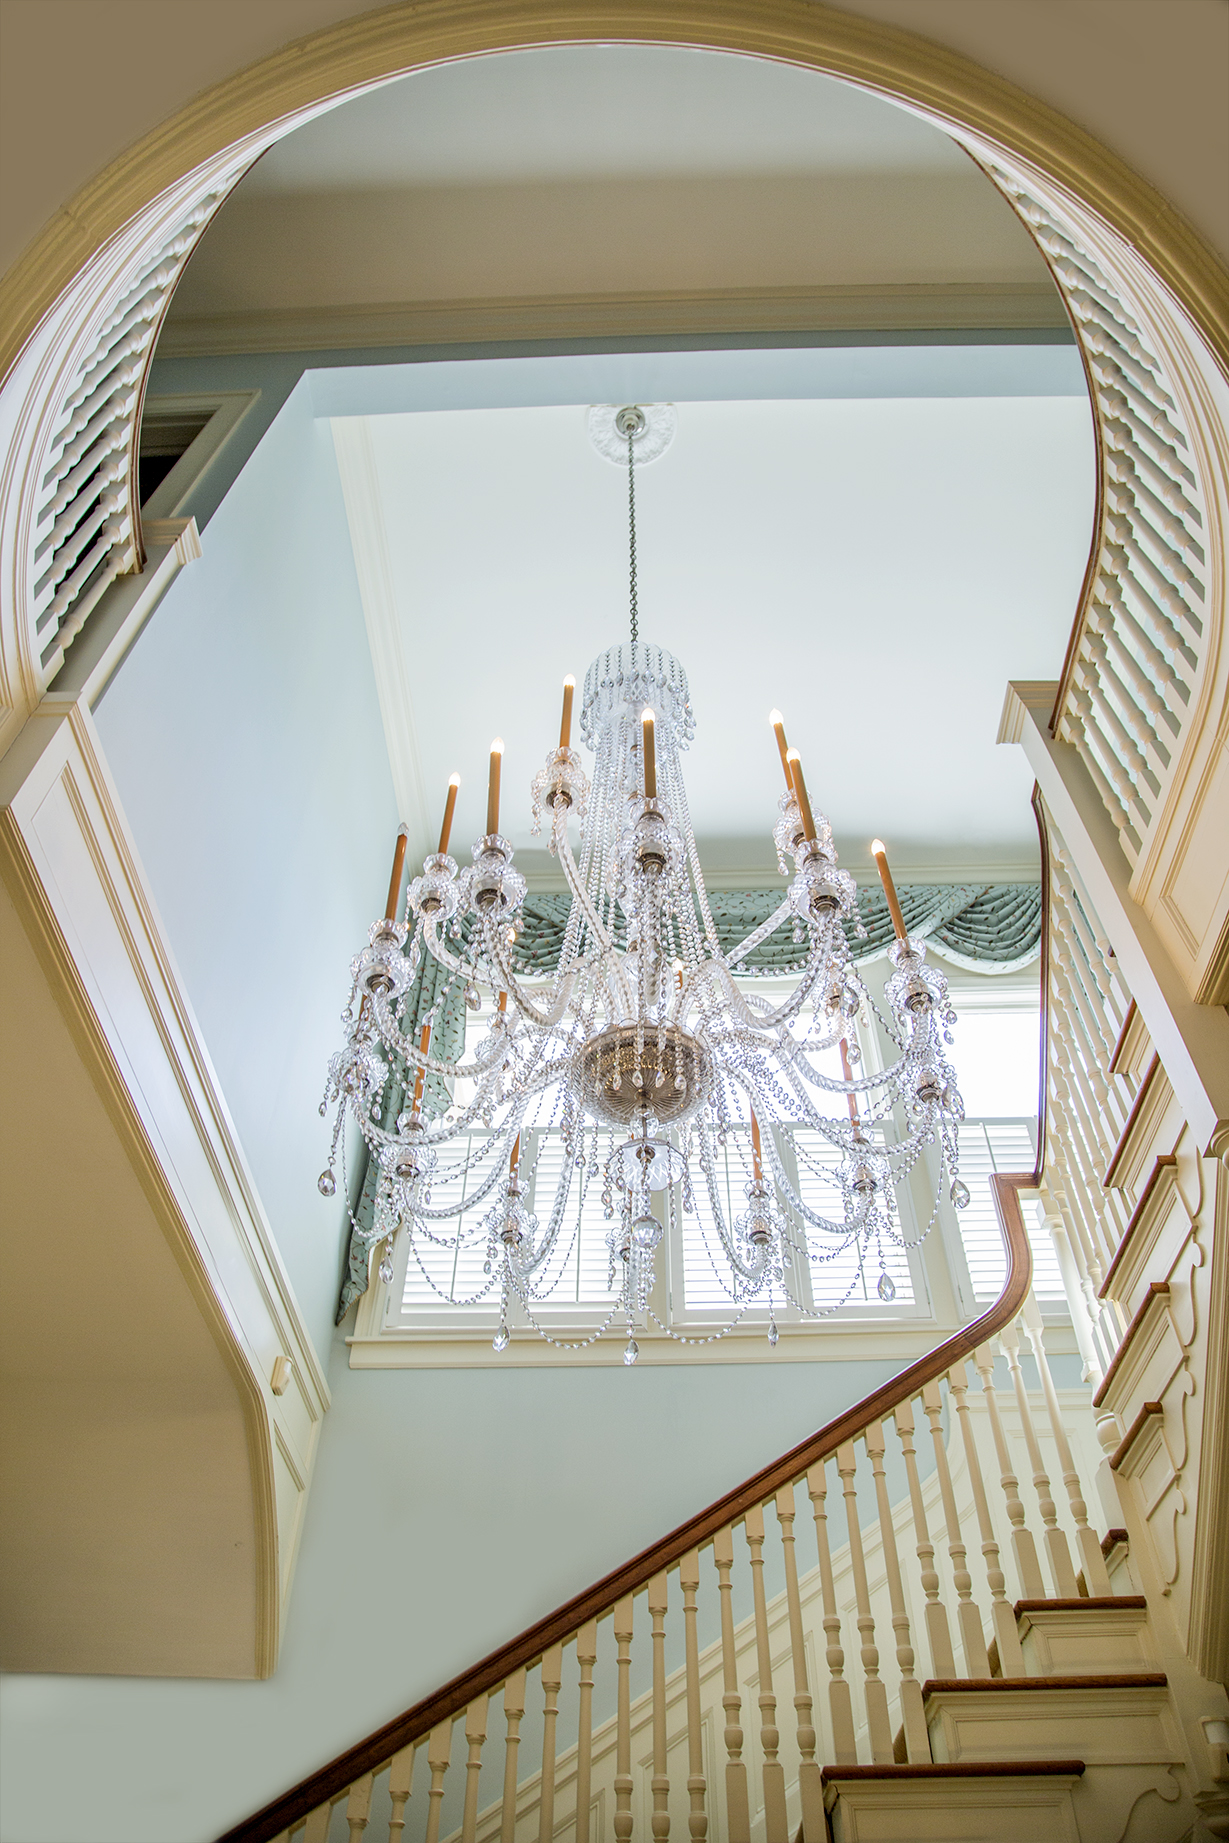 According to Mrs. Susan Ross, wife of UNC System President Tom Ross,the first chandelier was broken while being lowered for cleaning.